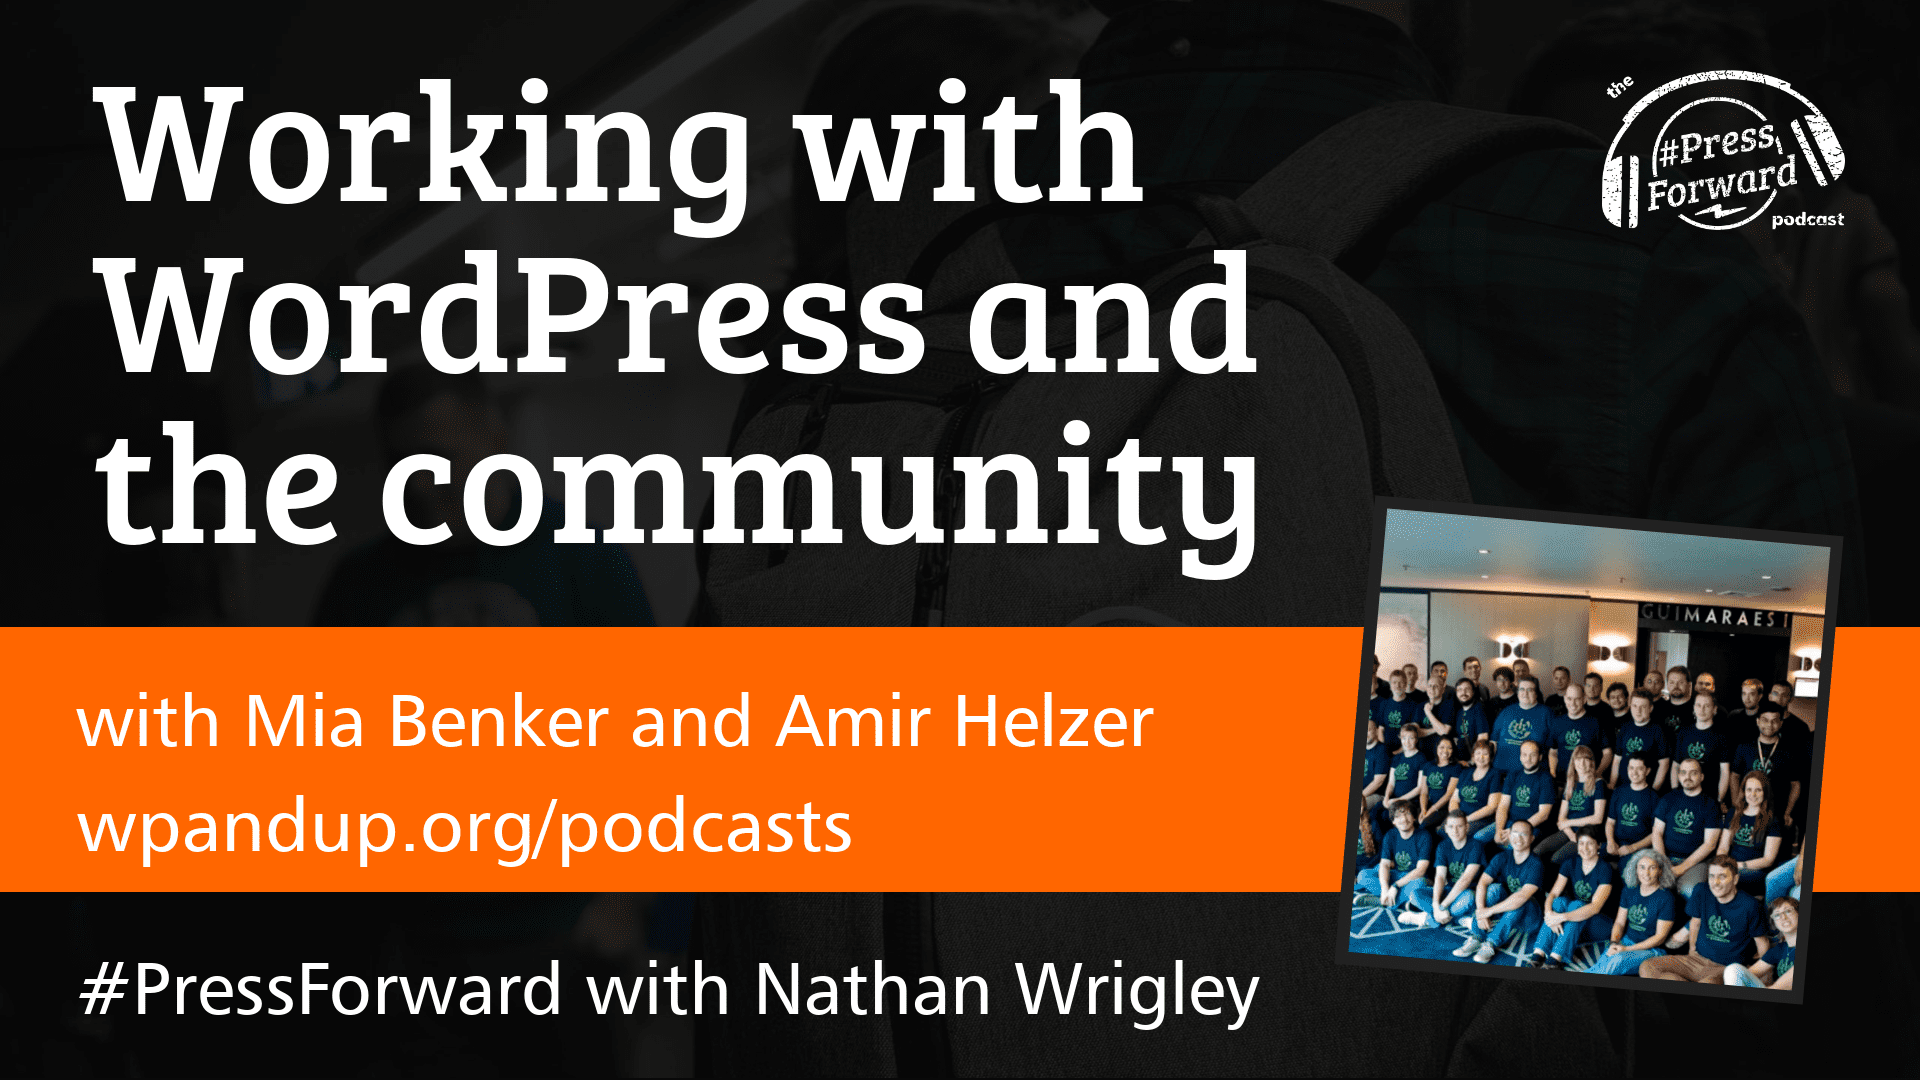 Working with WordPress and the community - #029